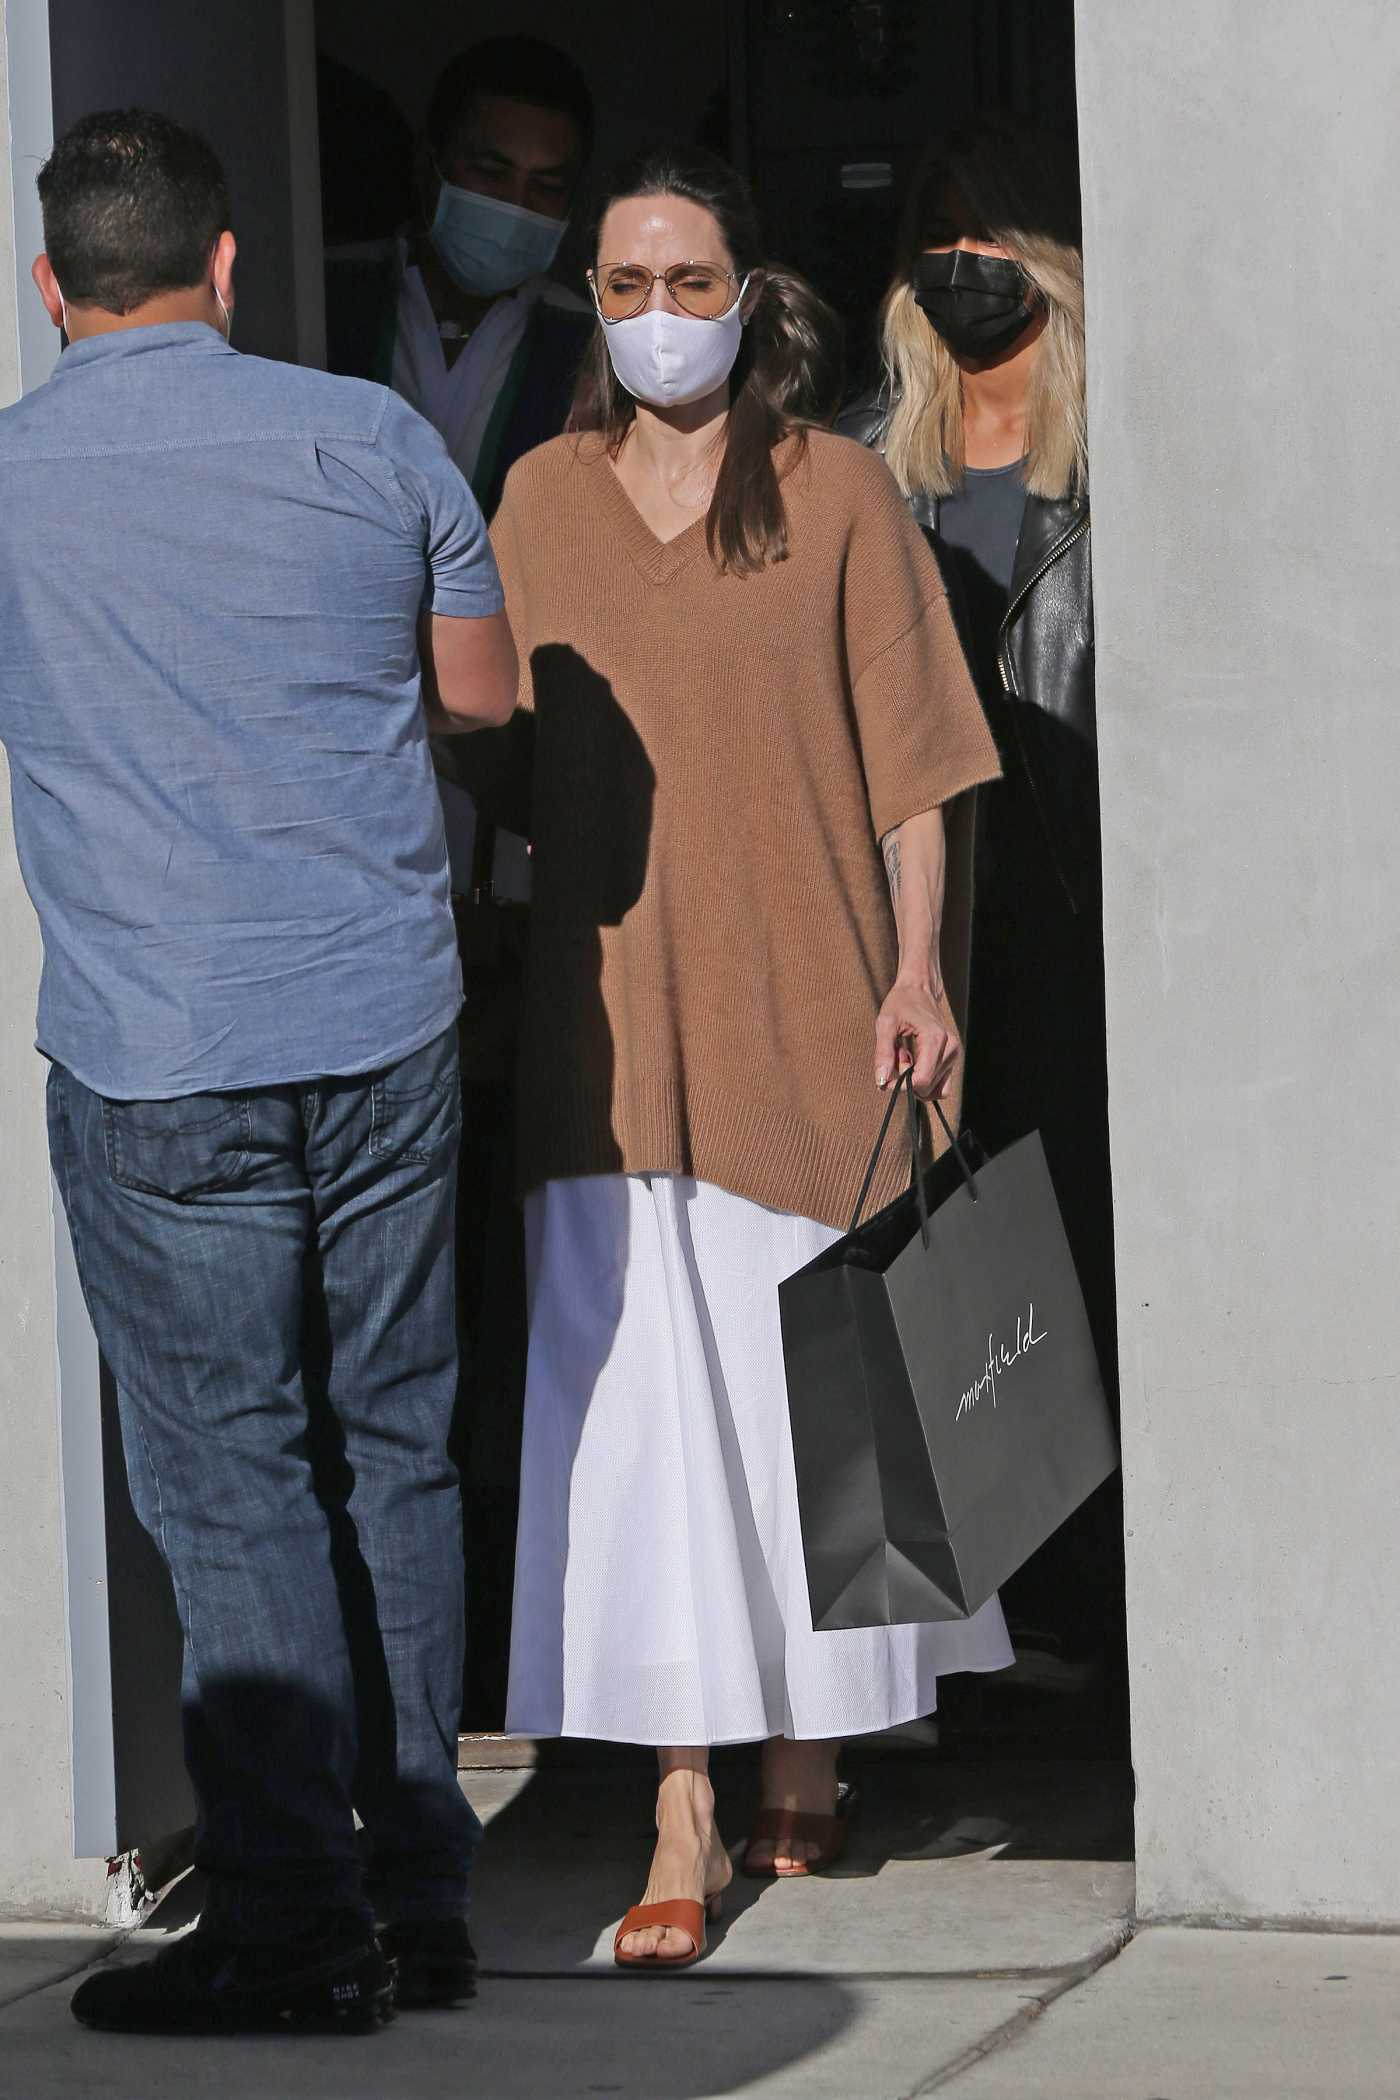 Angelina Jolie in a Protective Mask Hits up the Video Game Store GameStop in Los Angeles 08/02/2020